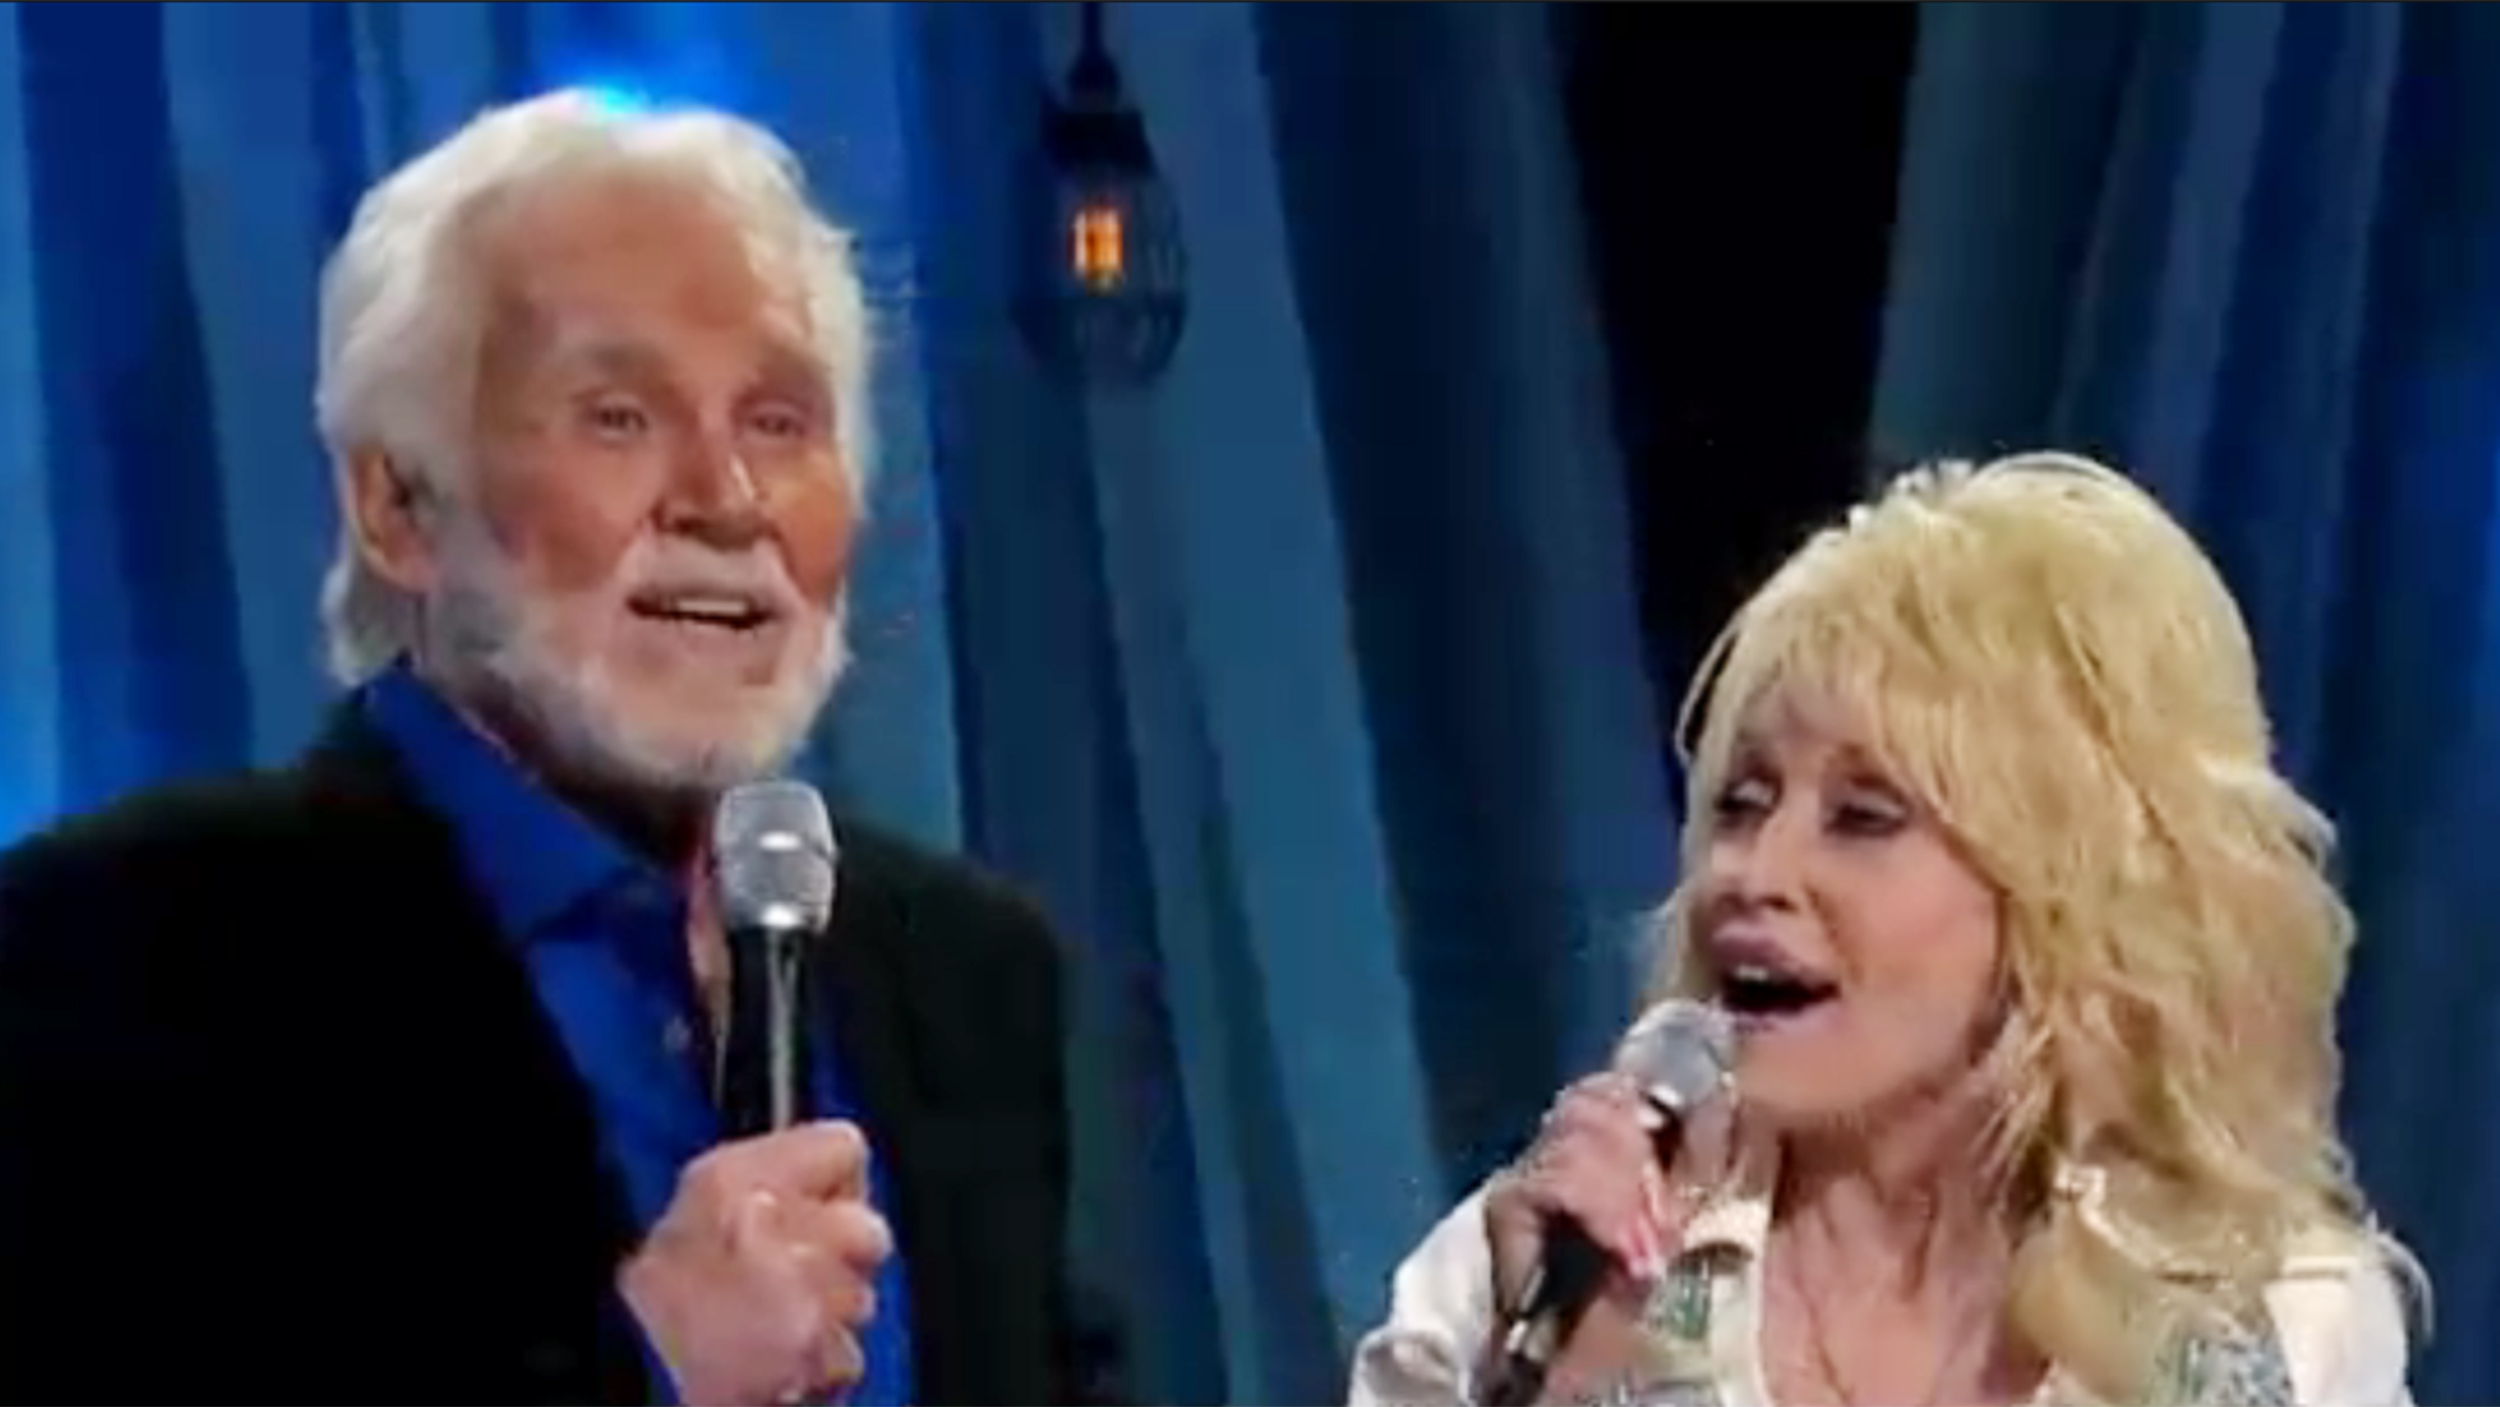 Kenny Rogers Duet With Dolly Parton Islands In The Stream